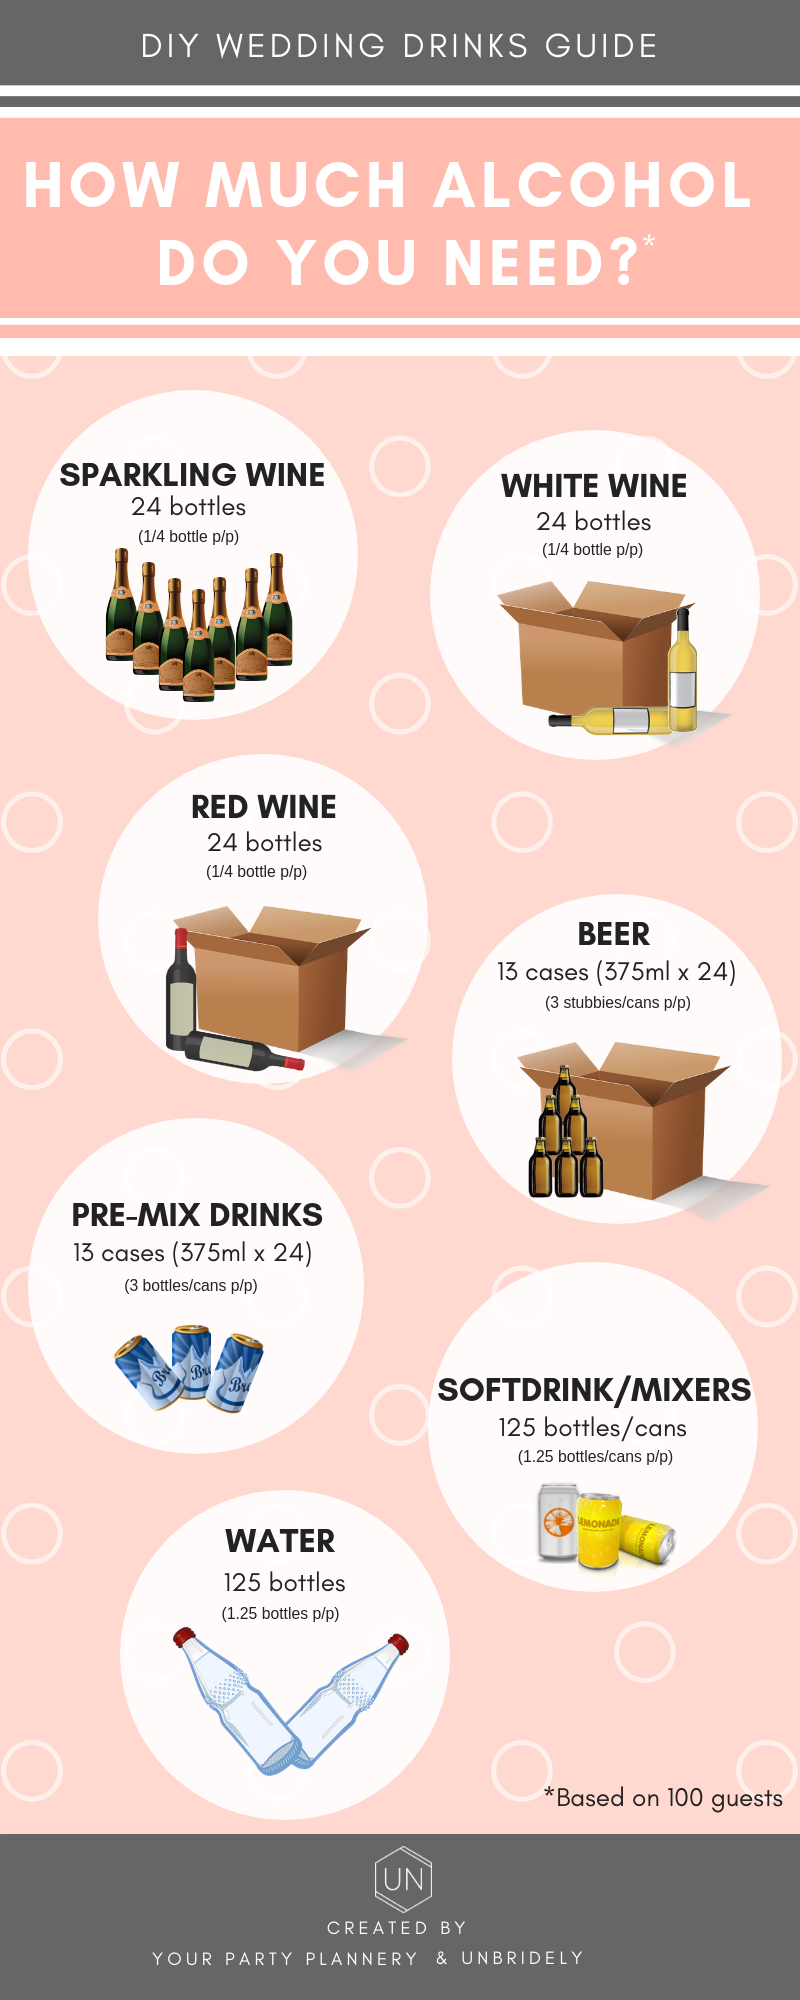 Unbridely - DIY wedding drinks guide.png